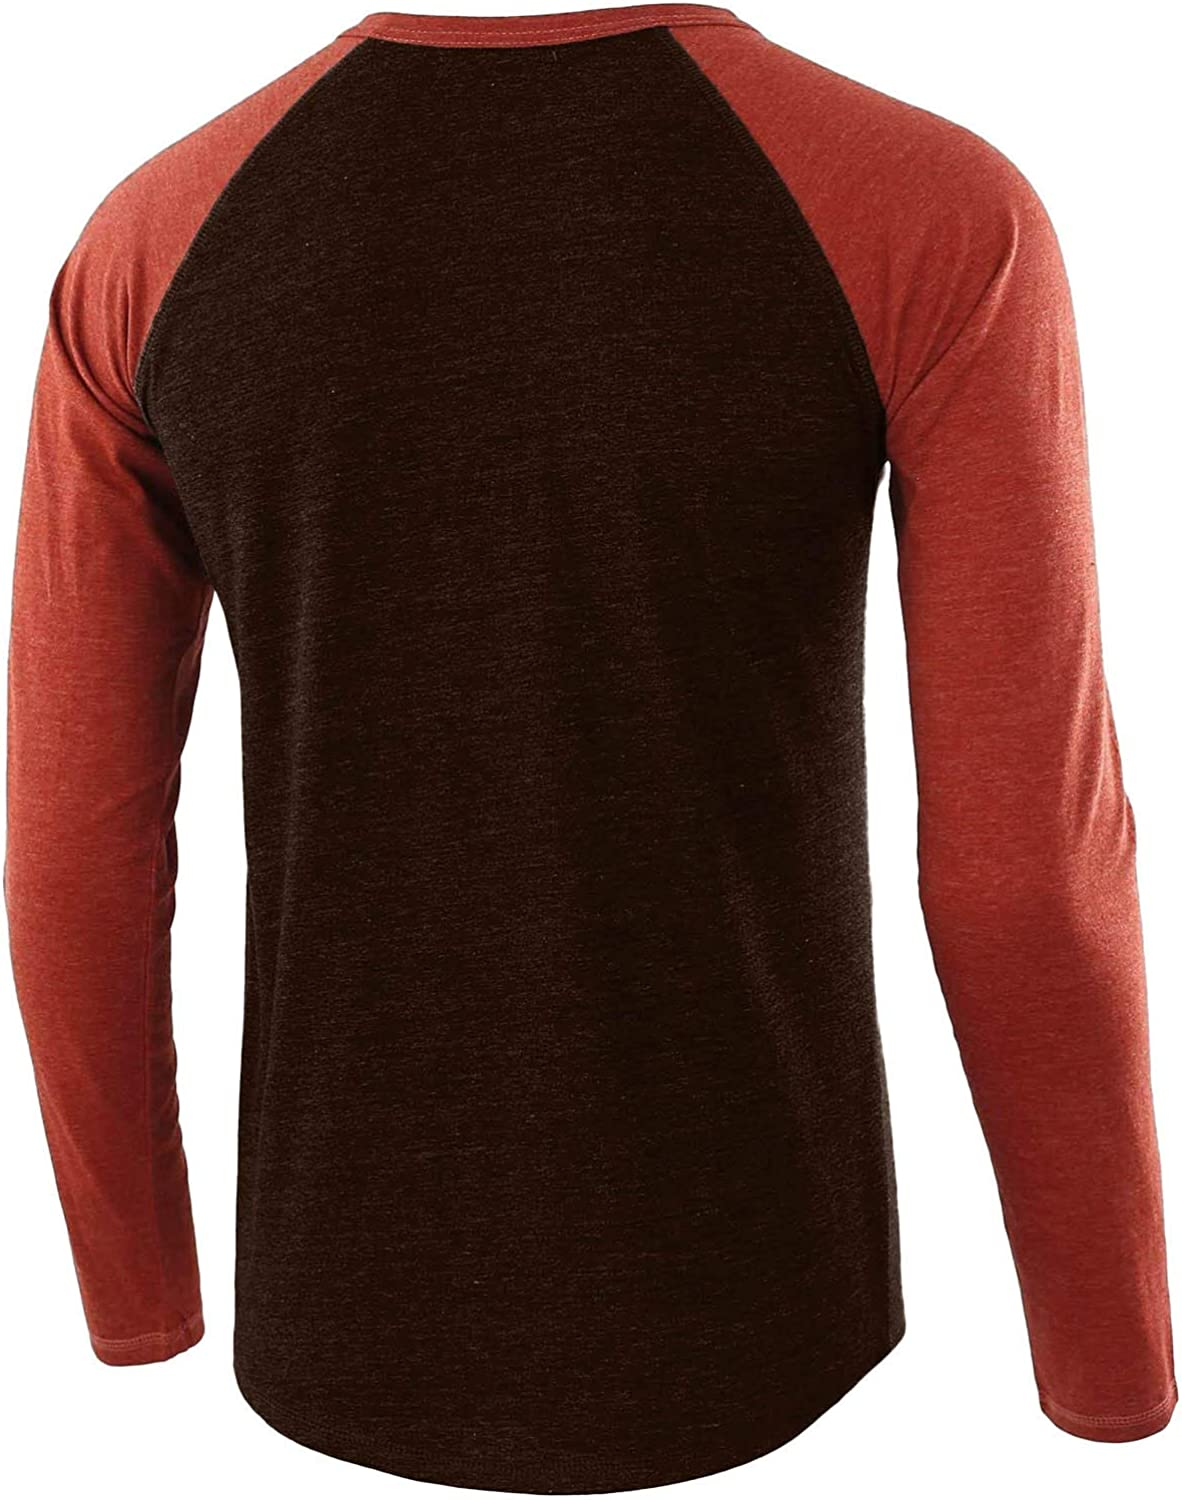 Men Round Neck T-Shirt Casual Spring Long Sleeve Shirts Fashion Patchwork Tops Blouse Slim Fit Sport Shirts